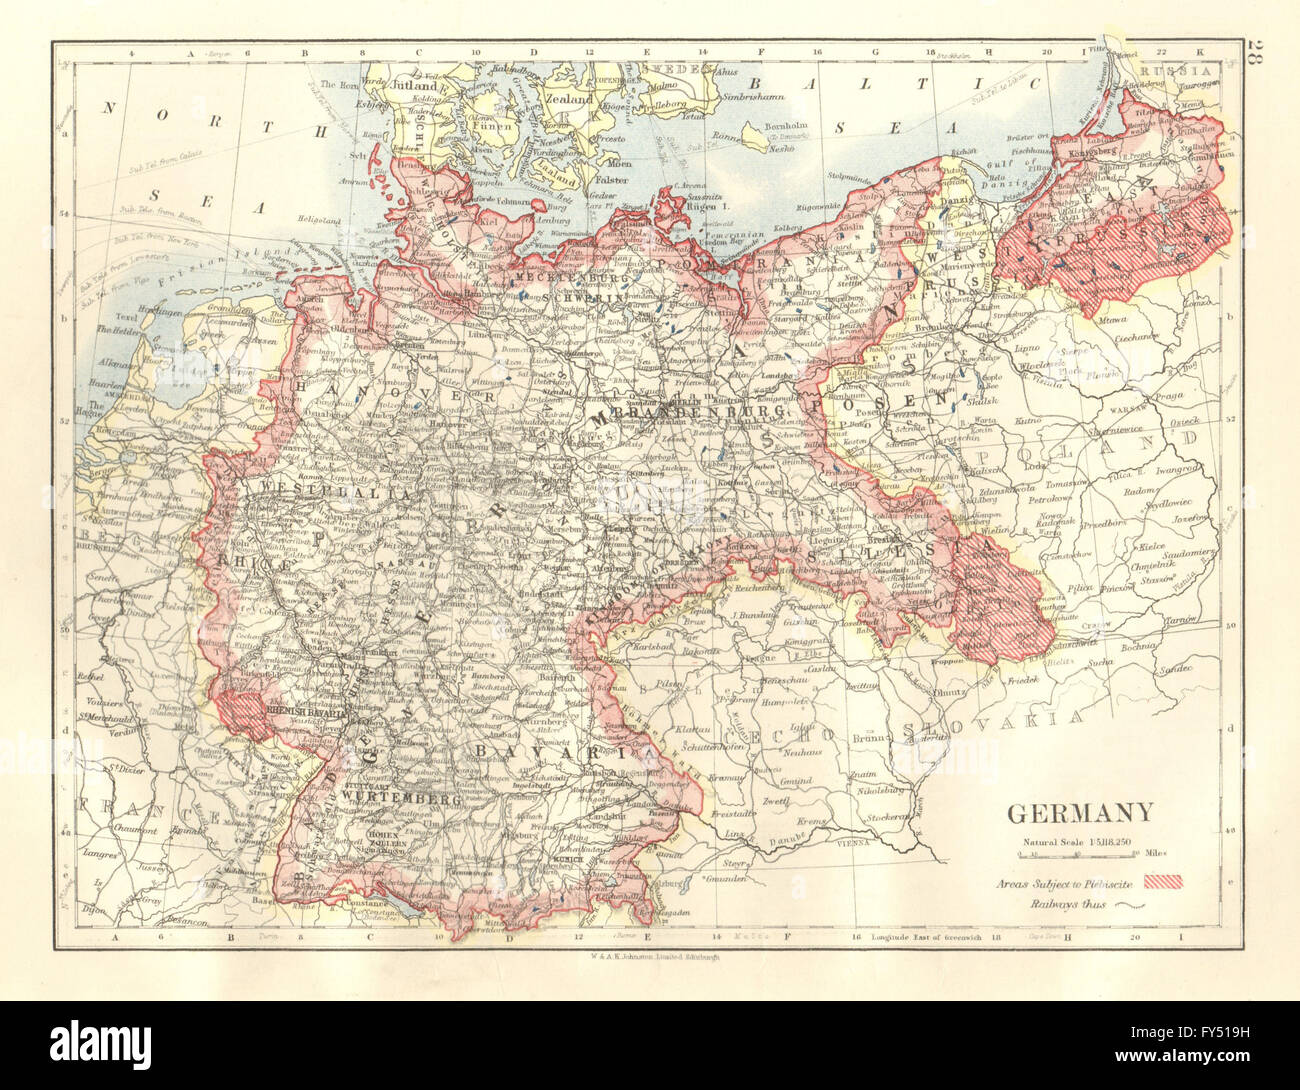 List of Synonyms and Antonyms of the Word: east prussia